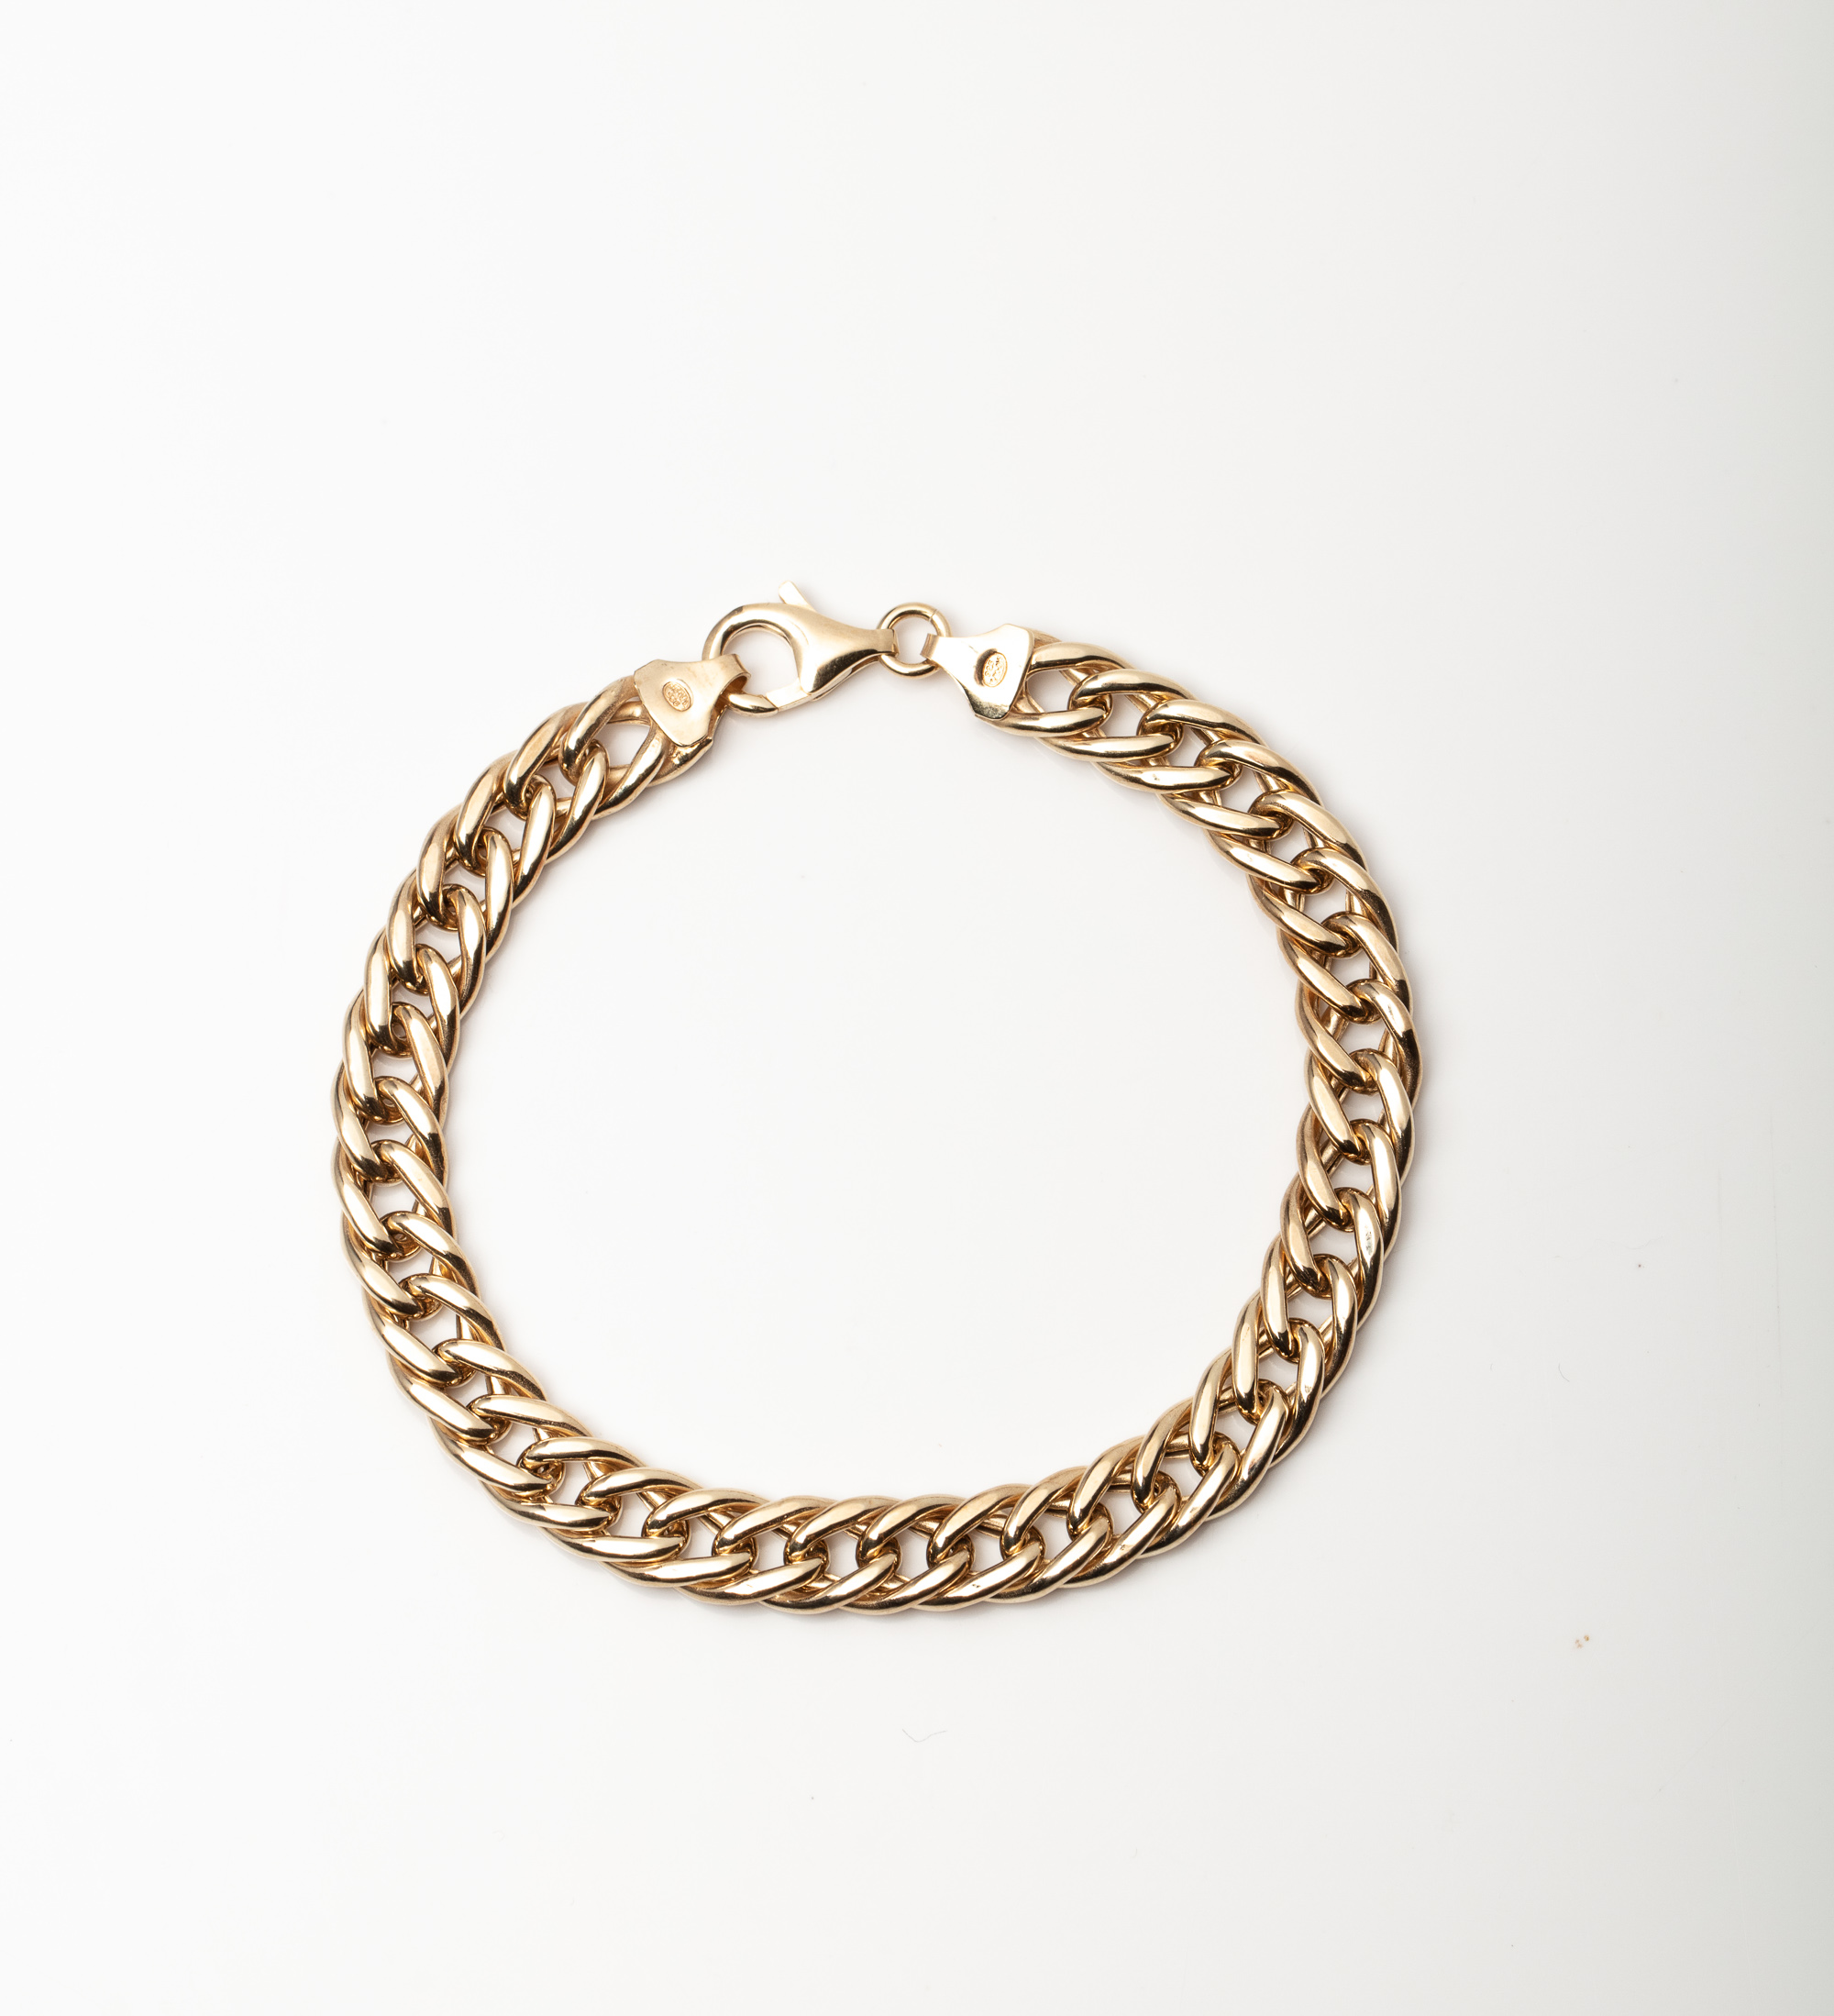 A 9CT GOLD AND SILVER BONDED CRUB BRACELET